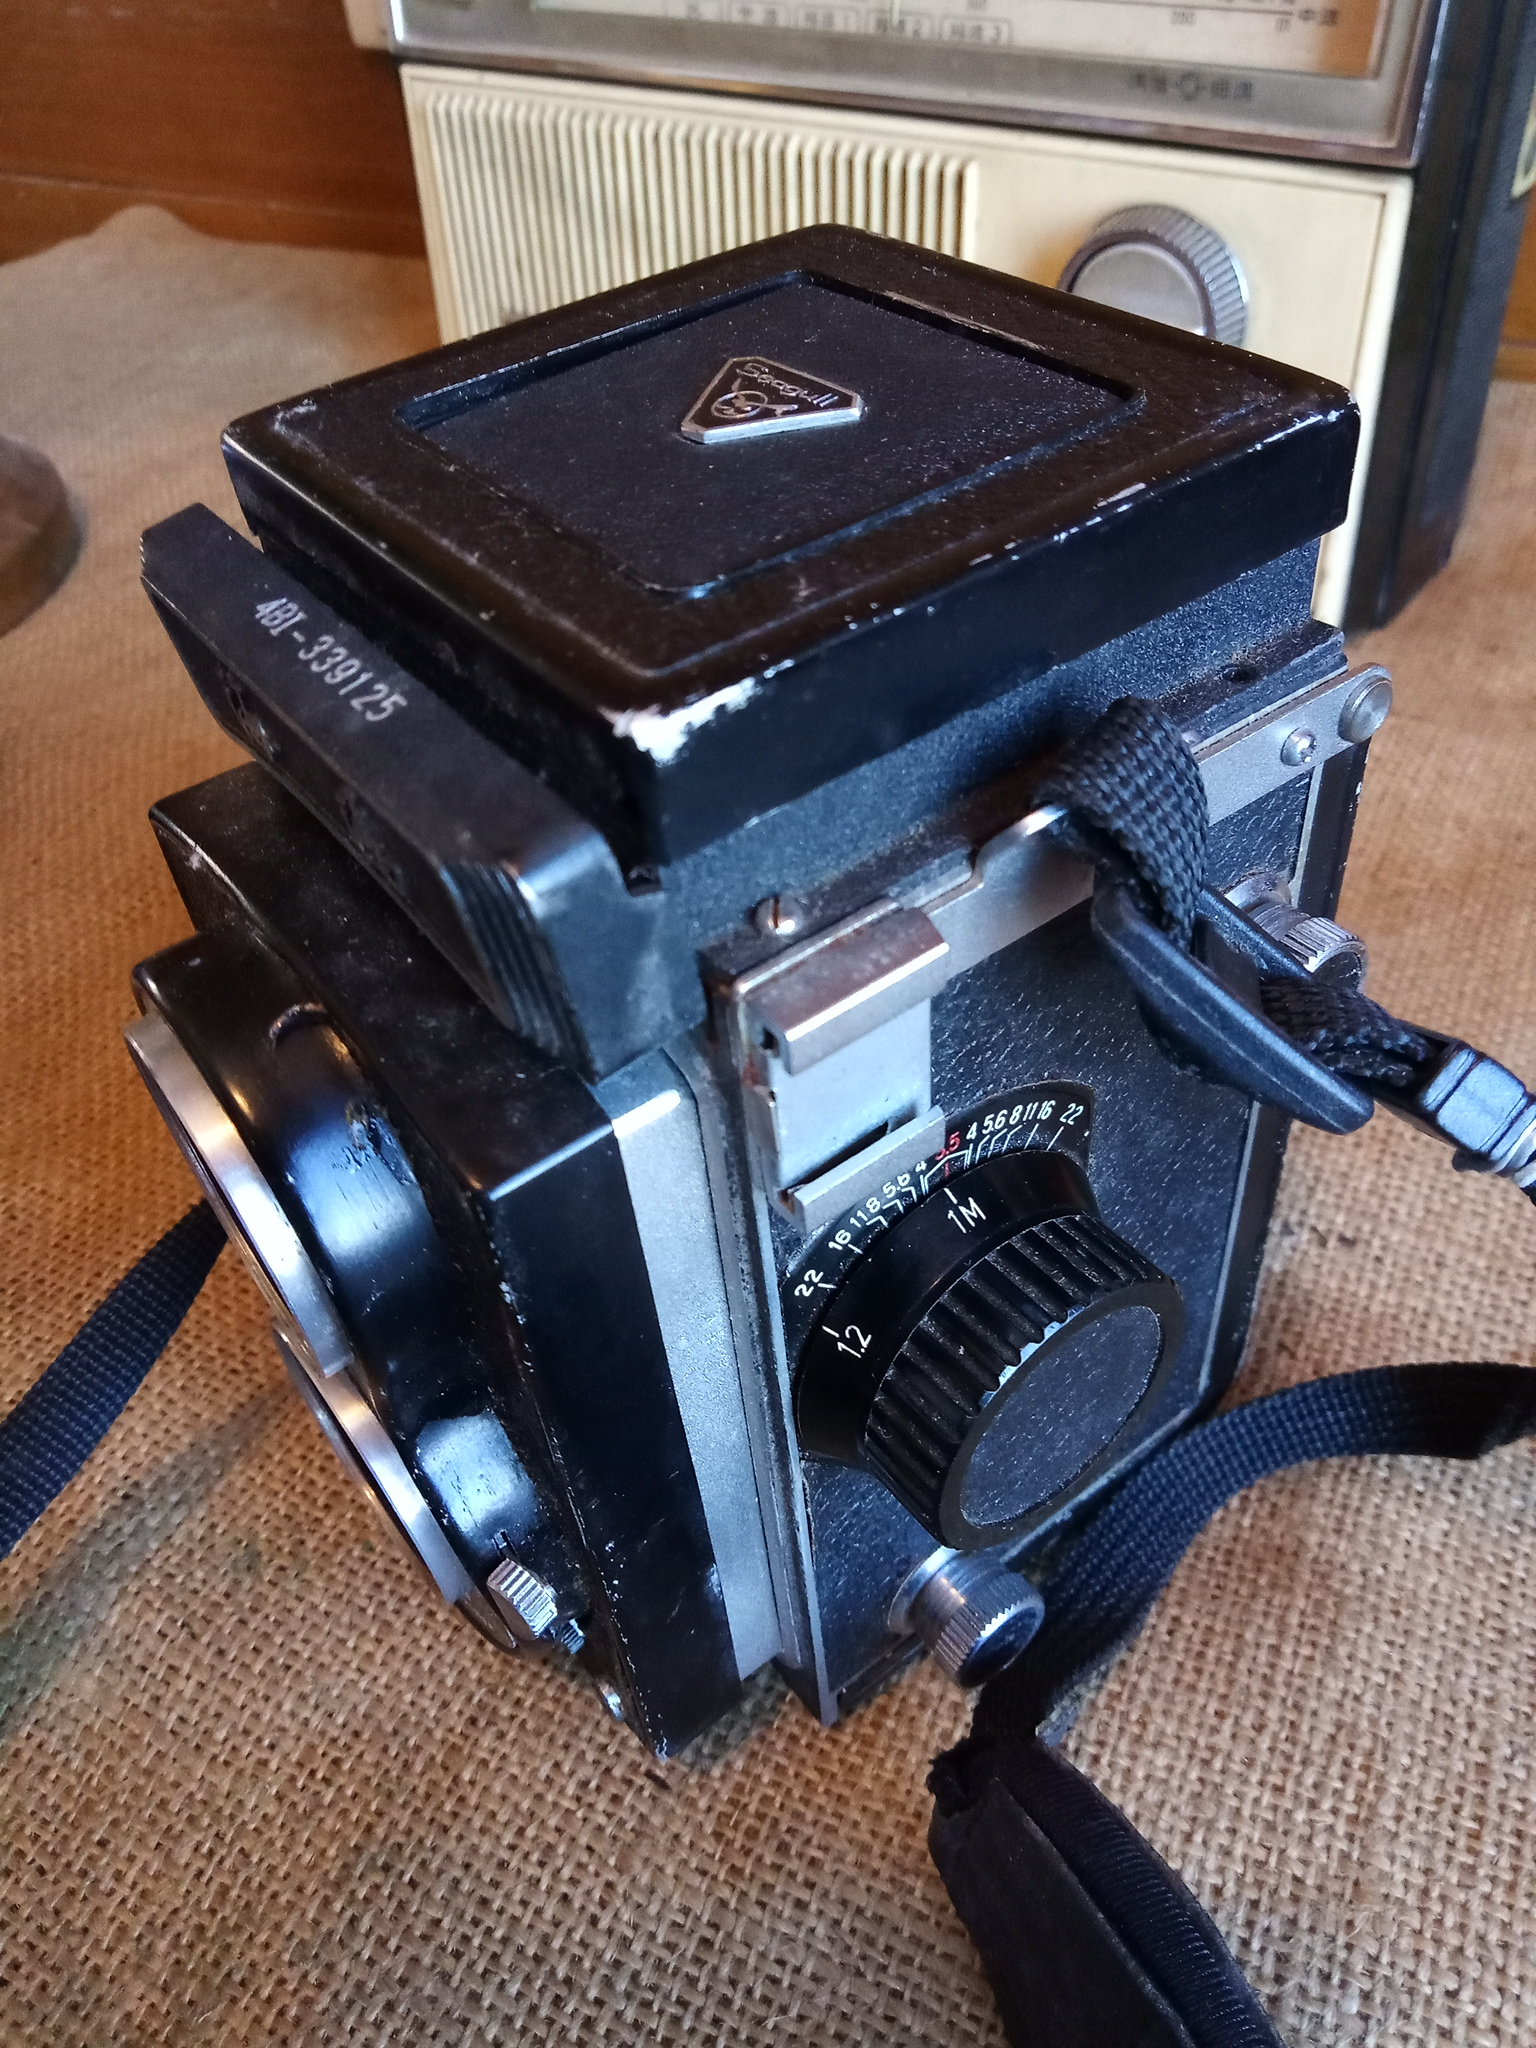 Energy Hall Seagull brand 120 camera domestic classic camera collection intact